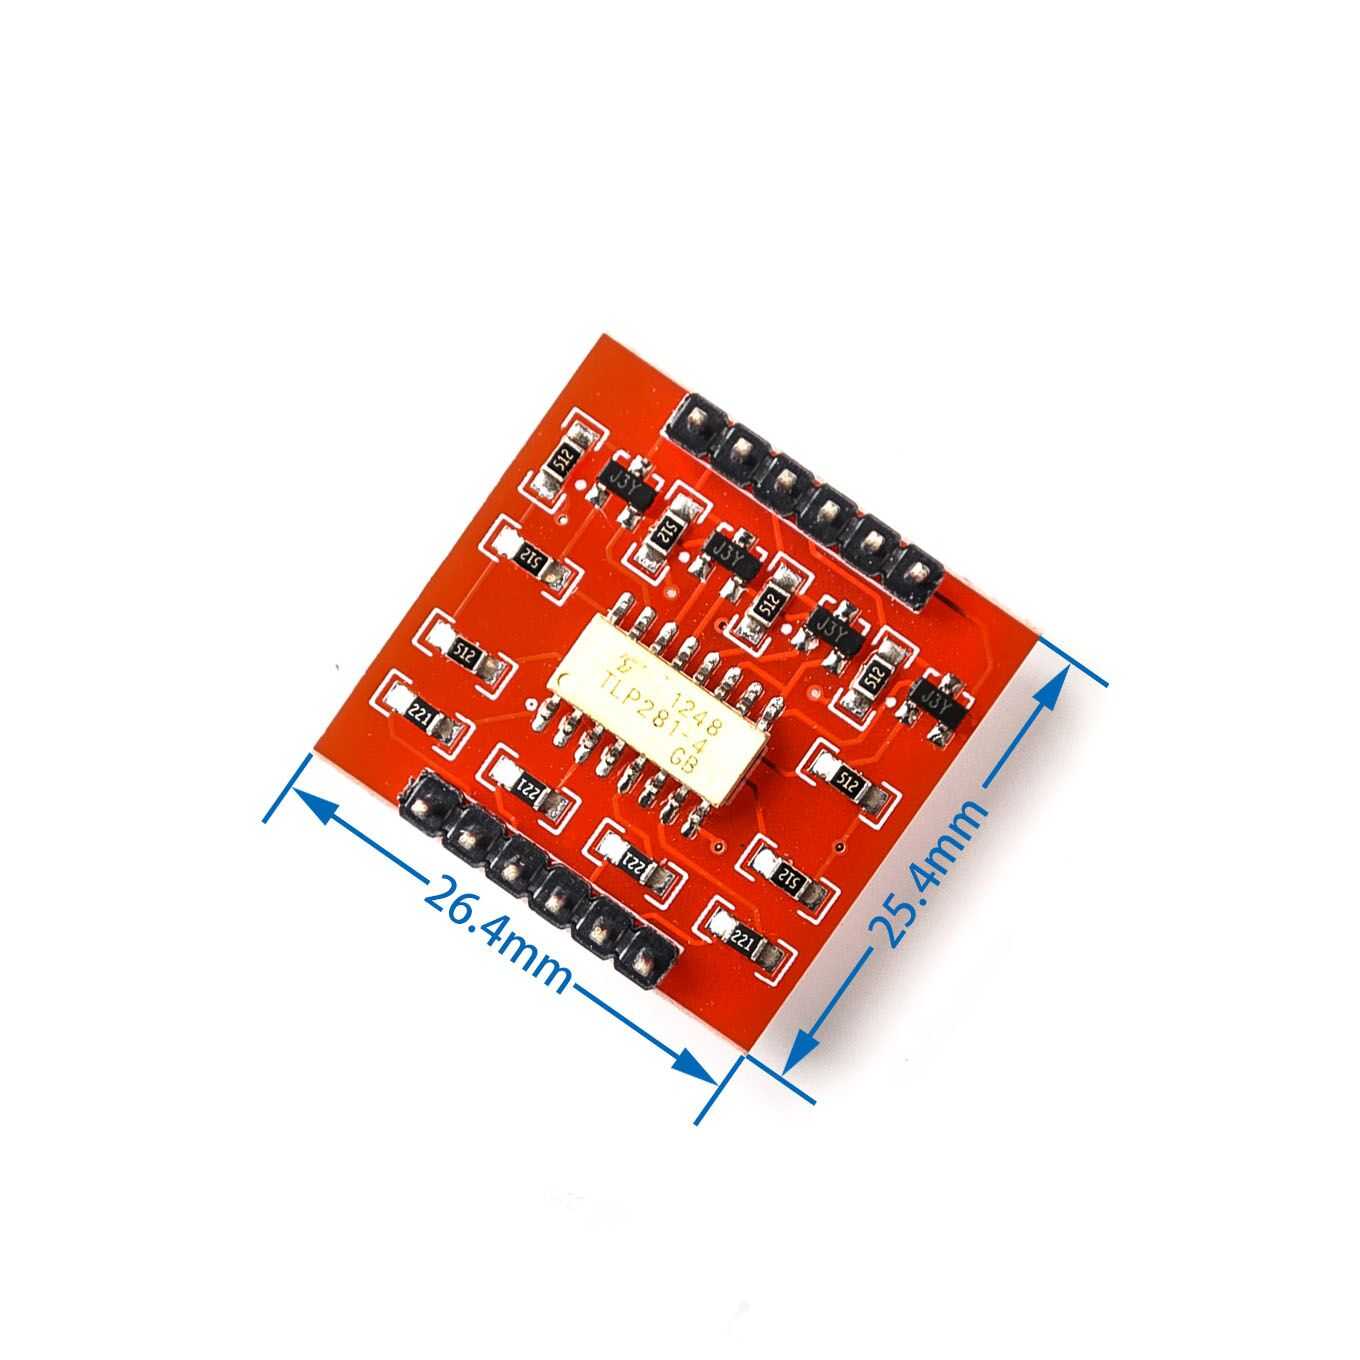 Integrated Circuits Tlp281 4 Ch 4-channel Opto-isolator Ic Module For Arduino Expansion Board High And Low Level Optocoupler Isolation 4 Channel Supplement The Vital Energy And Nourish Yin Active Components